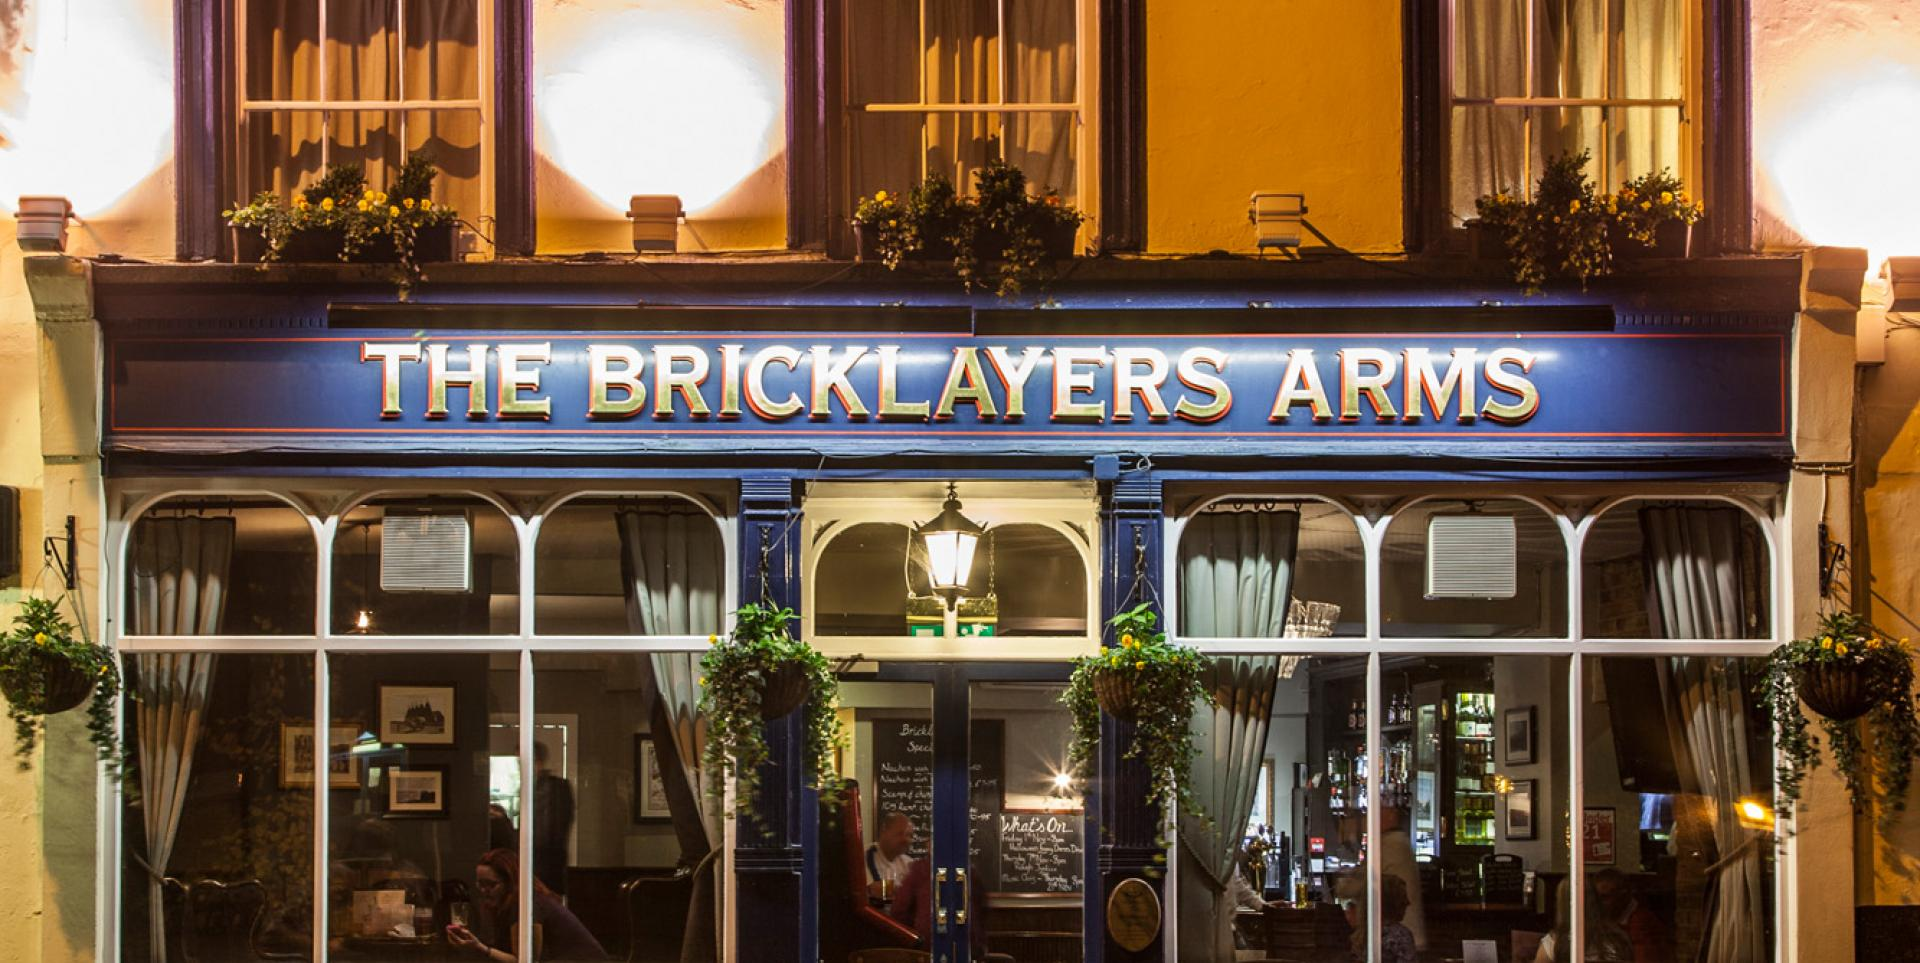 Home bricklayers arms for The bromley